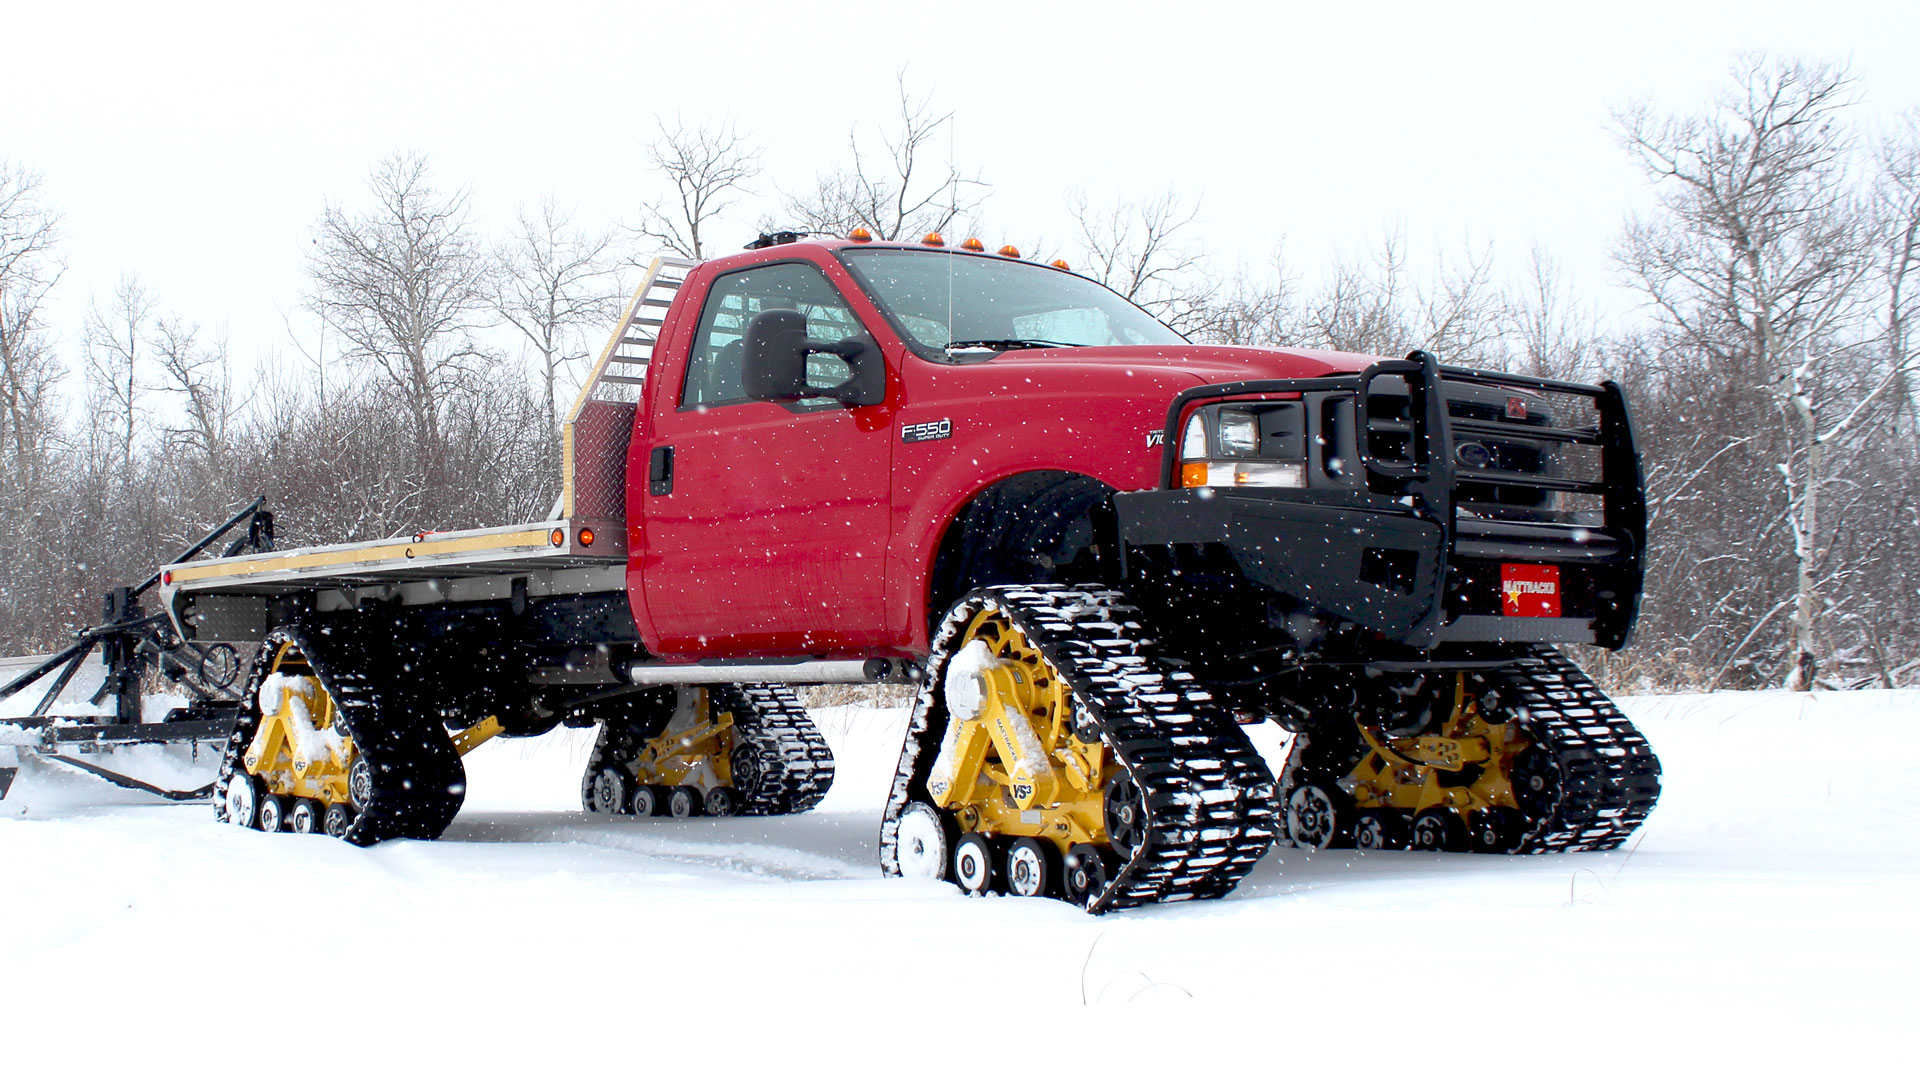 175 Tracks on a Ford F-550